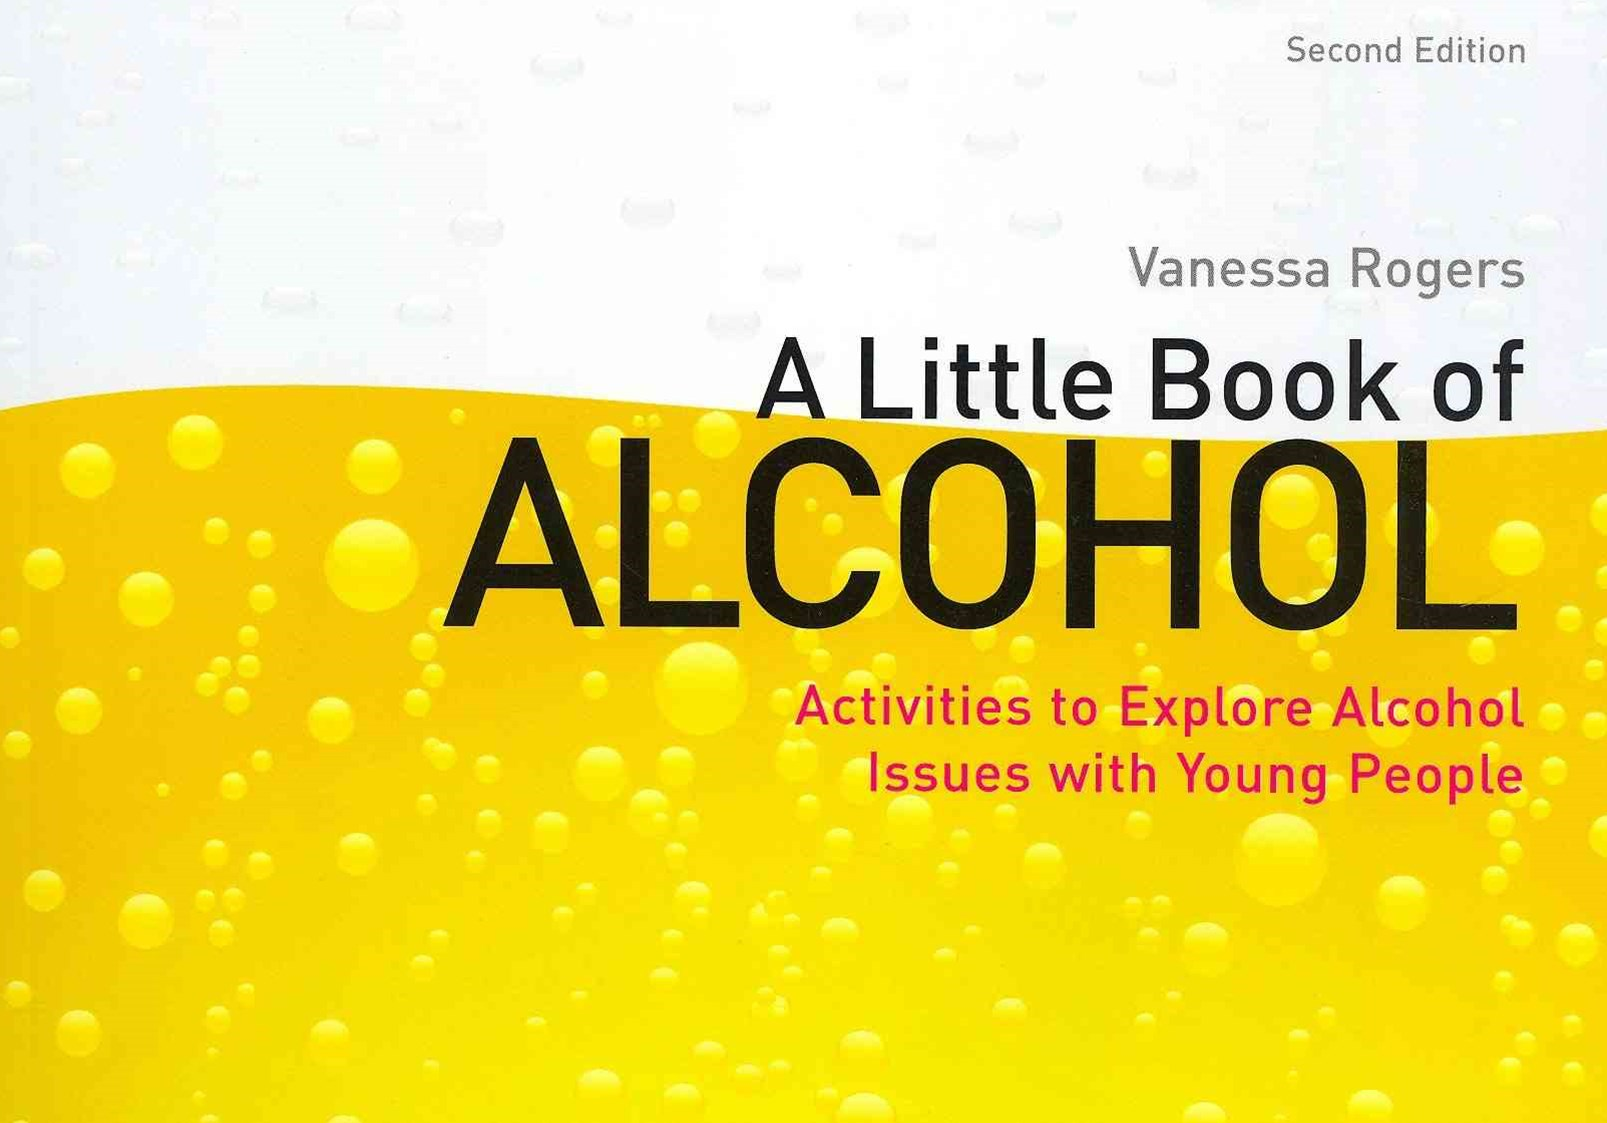 A Little Book of Alcohol